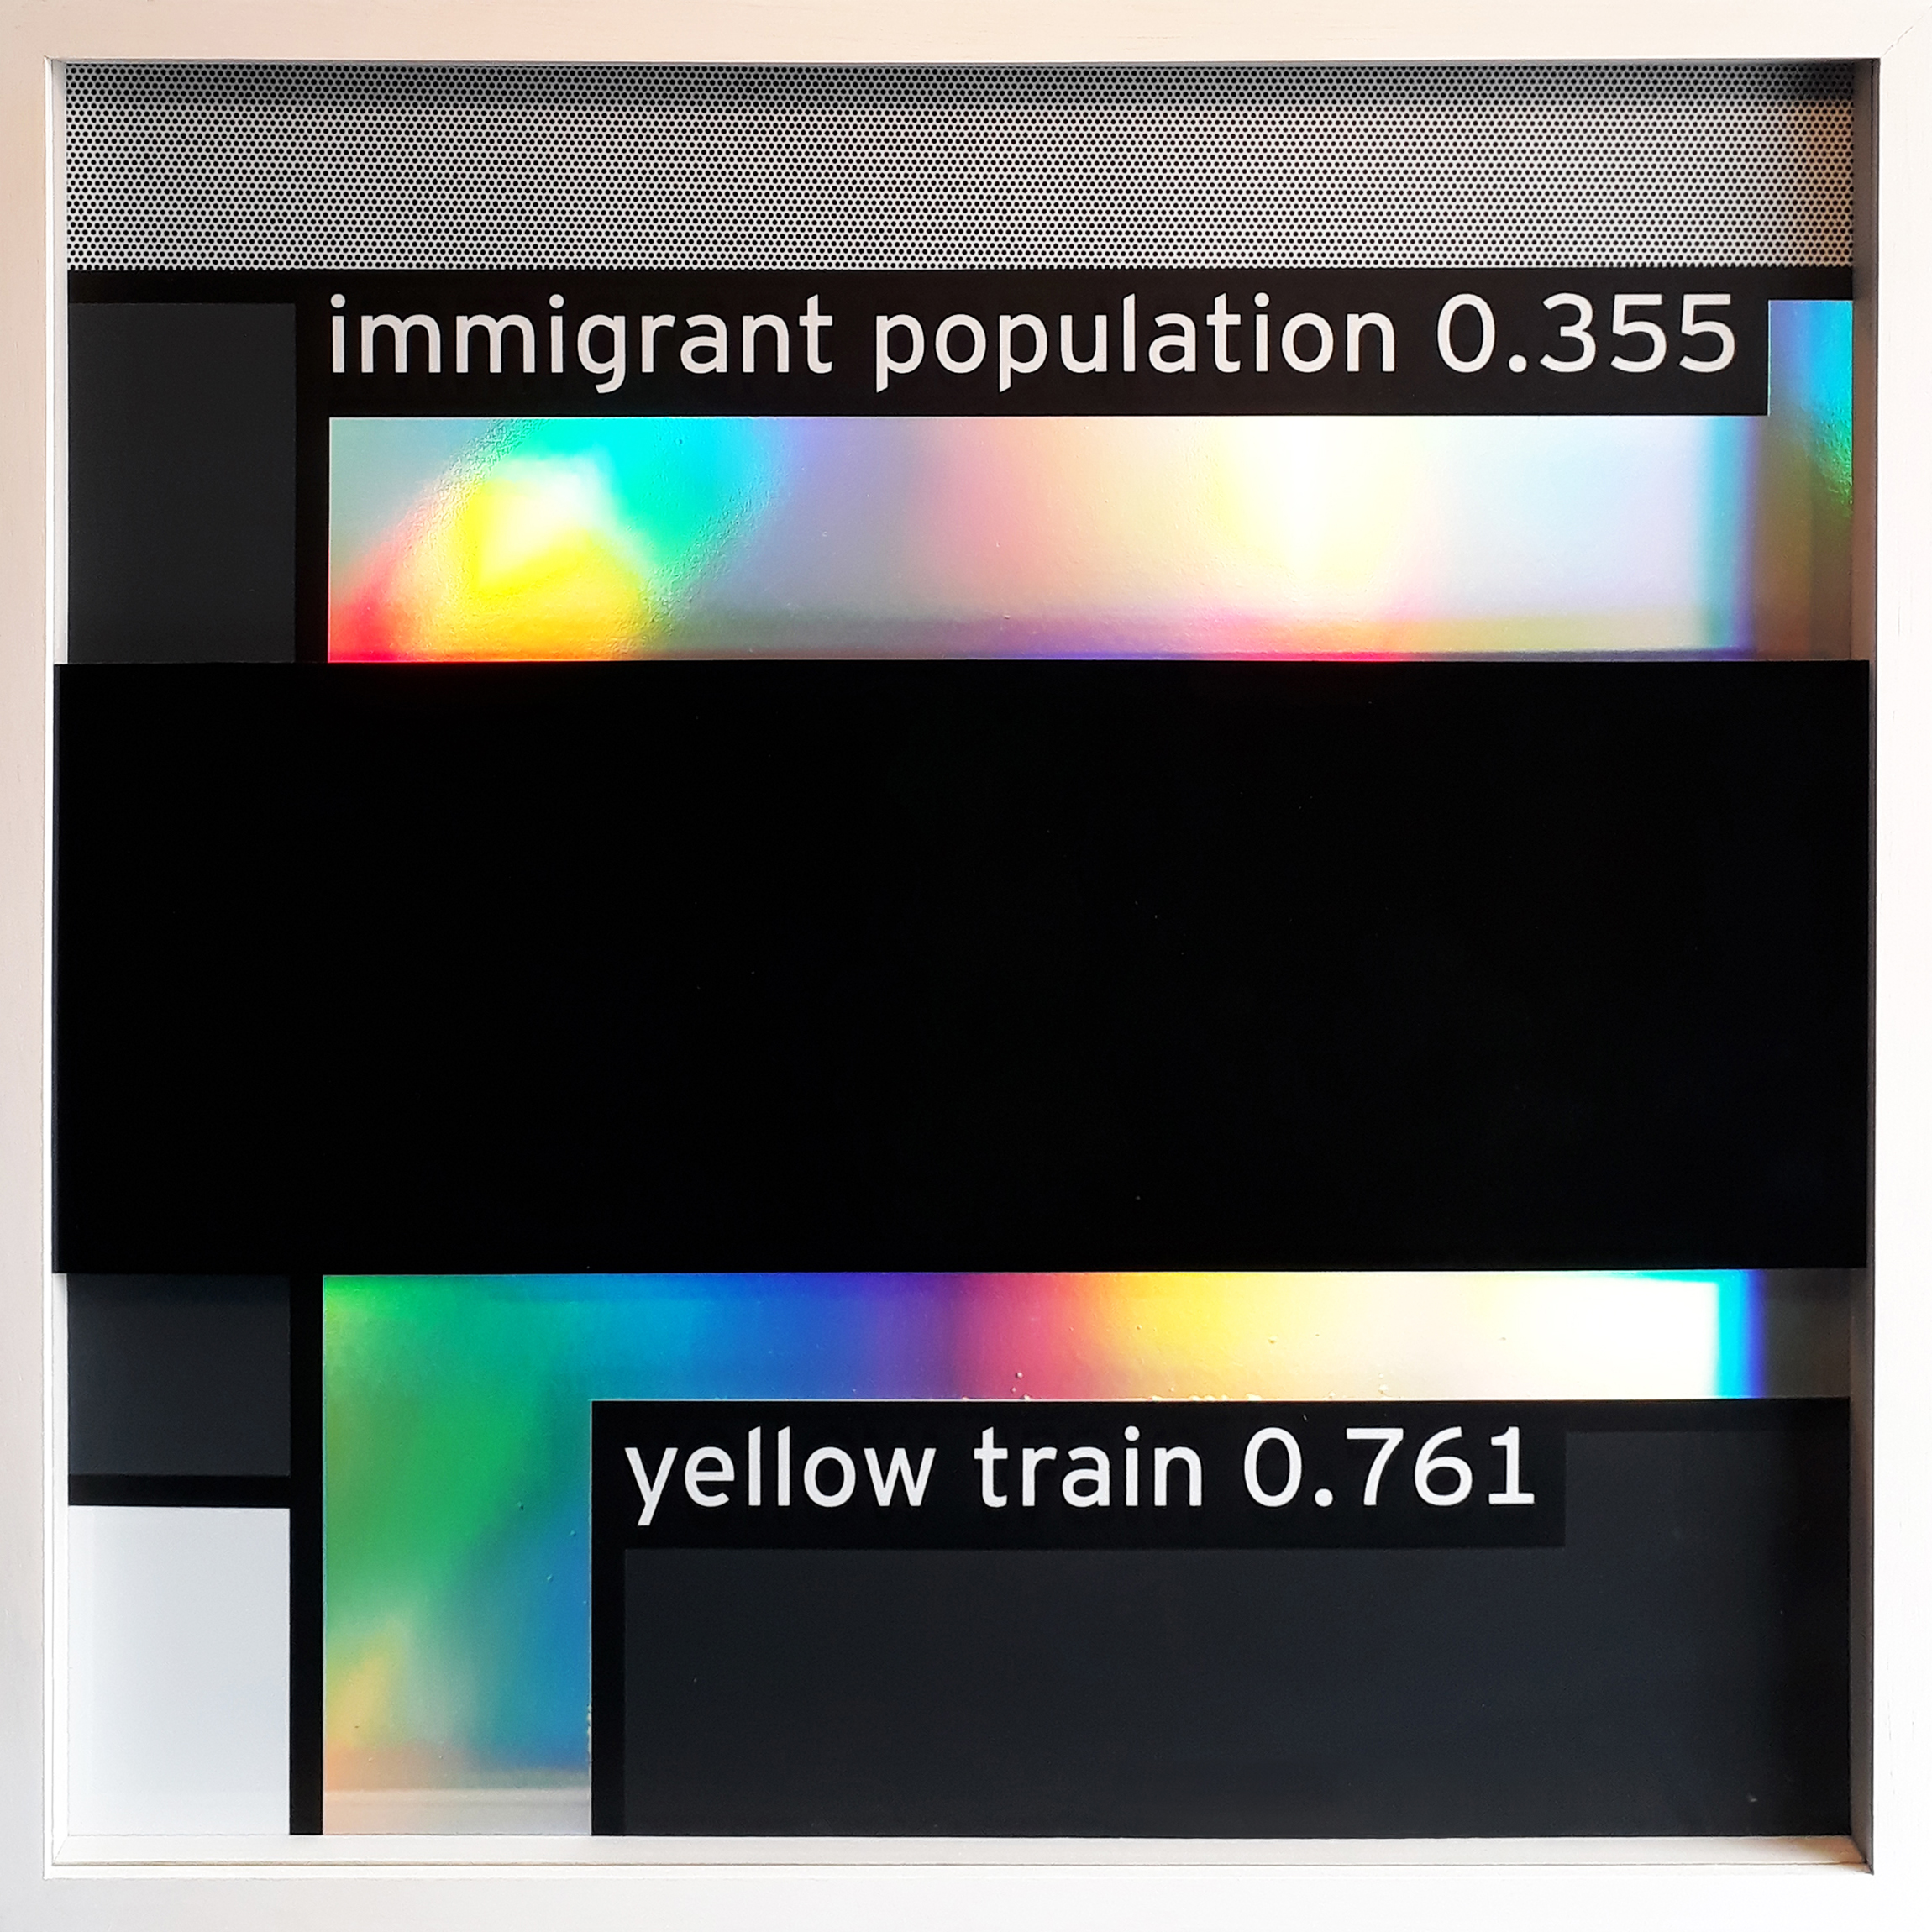 IMMIGRANT POPULATION 0.355